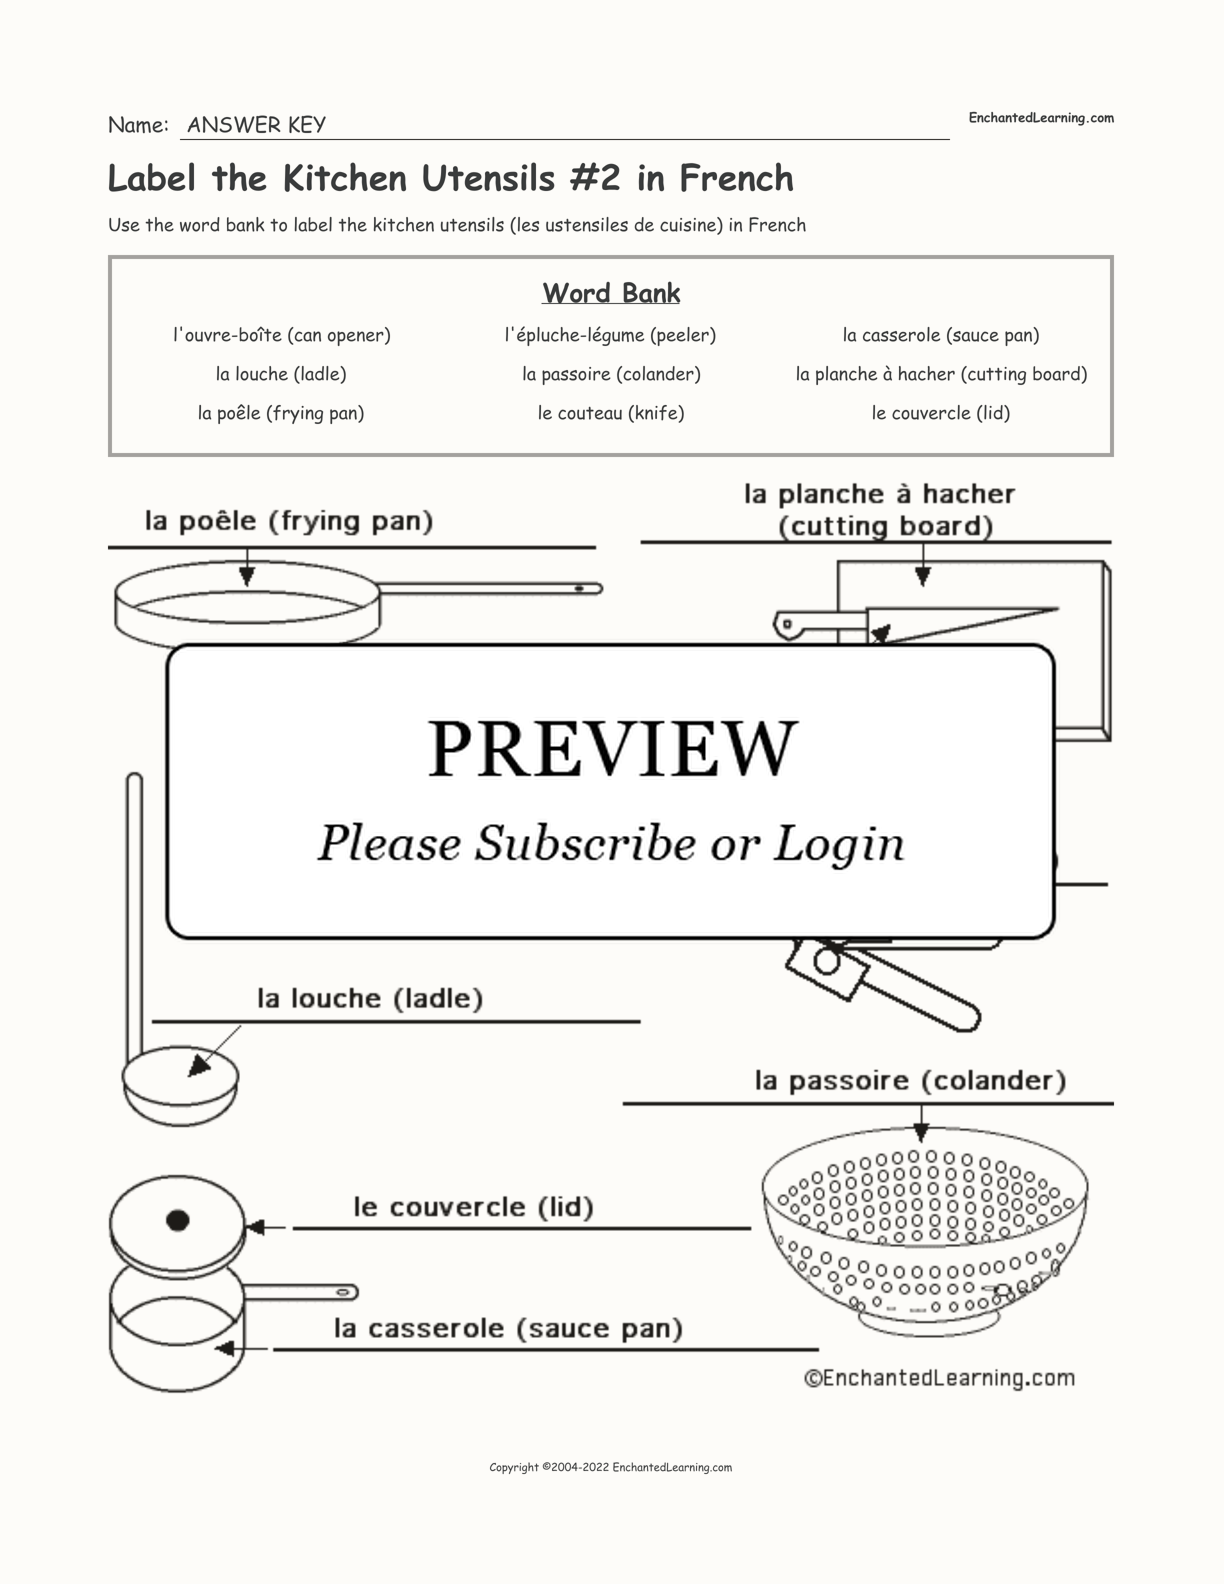 Label the Kitchen Utensils #2 in French interactive worksheet page 2